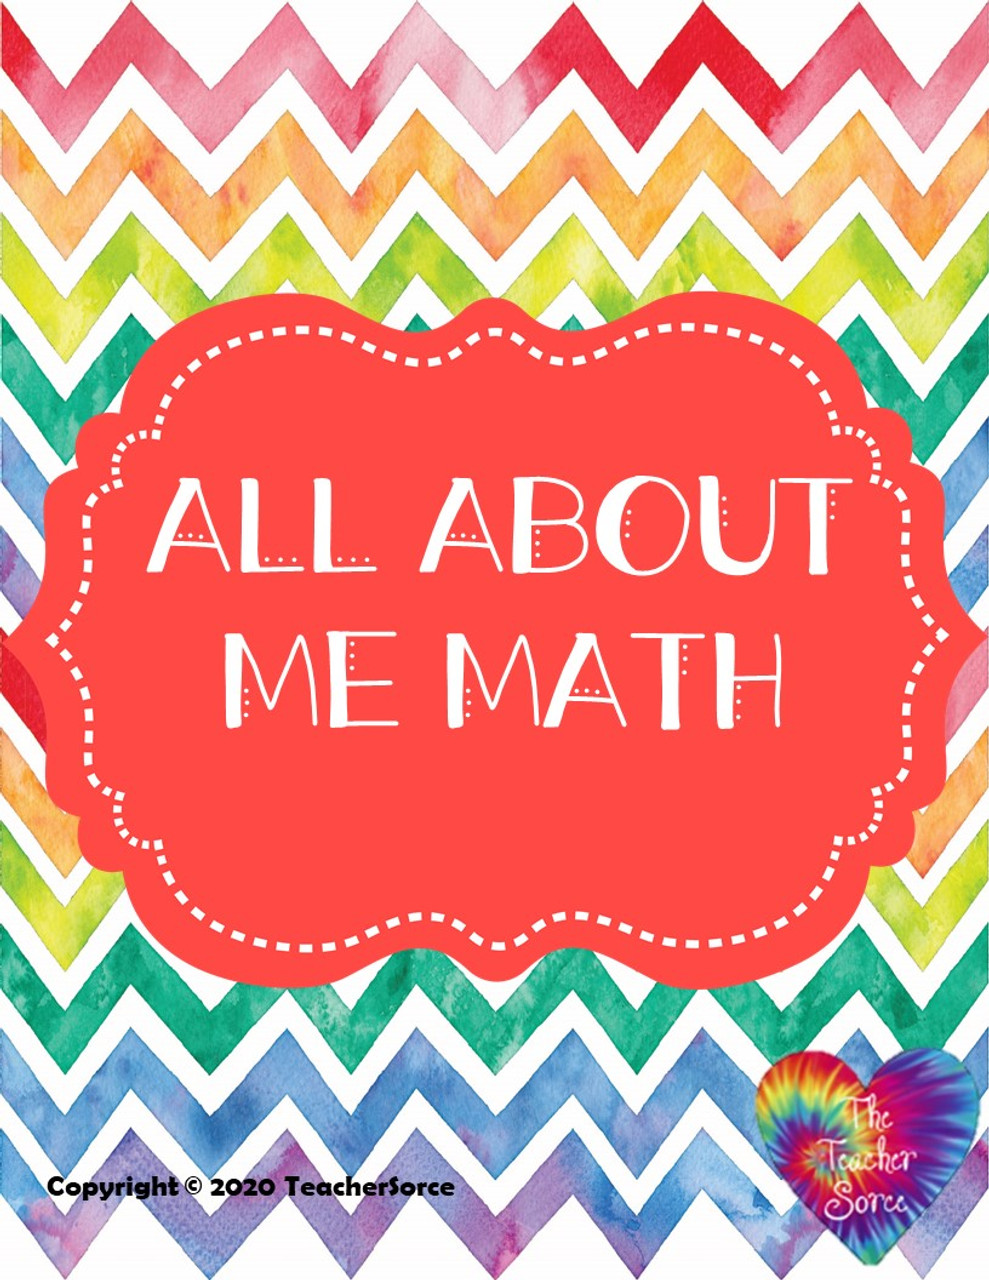 All About Me Math Activity